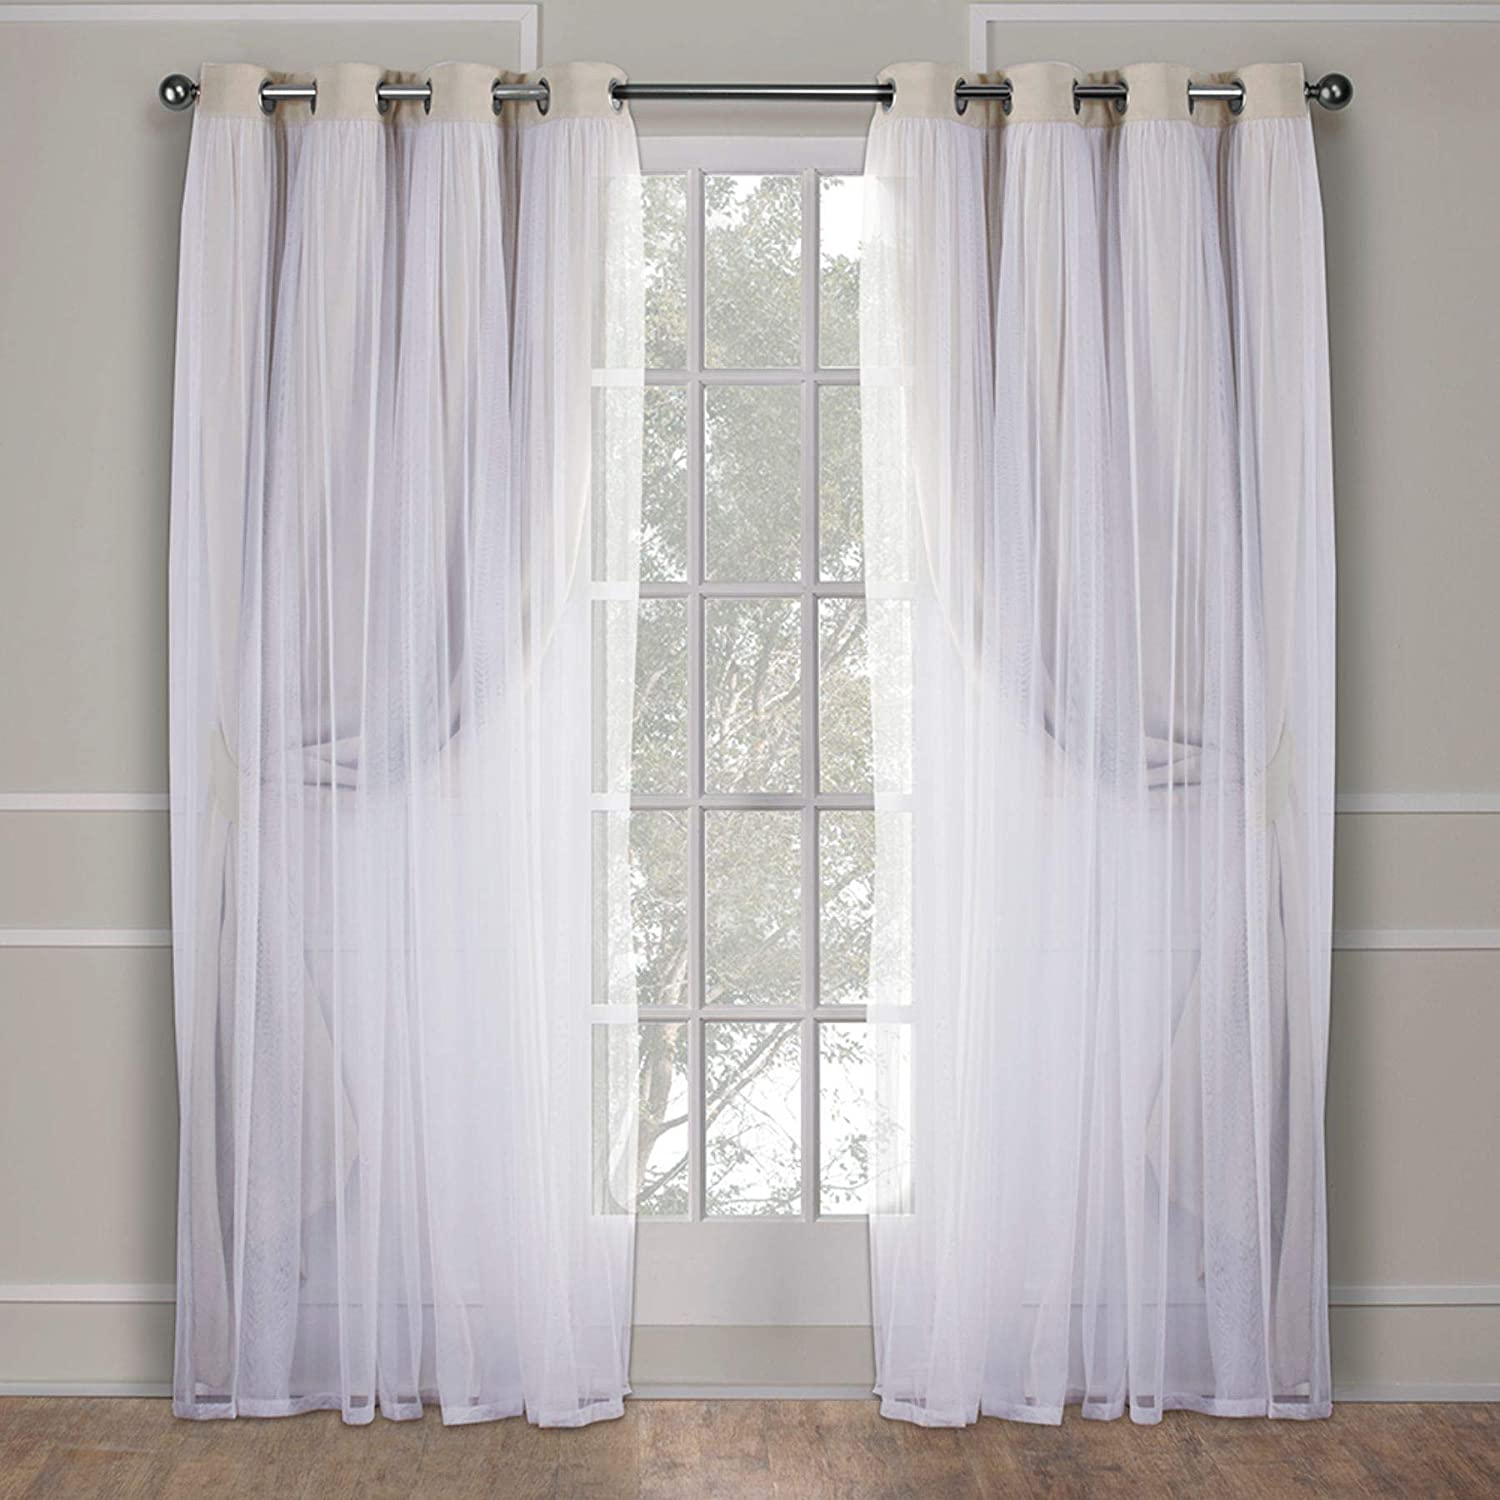 Exclusive Home Catarina Layered Solid Blackout And Sheer Grommet Top Curtain Panel Pair Sand 52x96 2 Piece Amazon Ca Home Kitchen